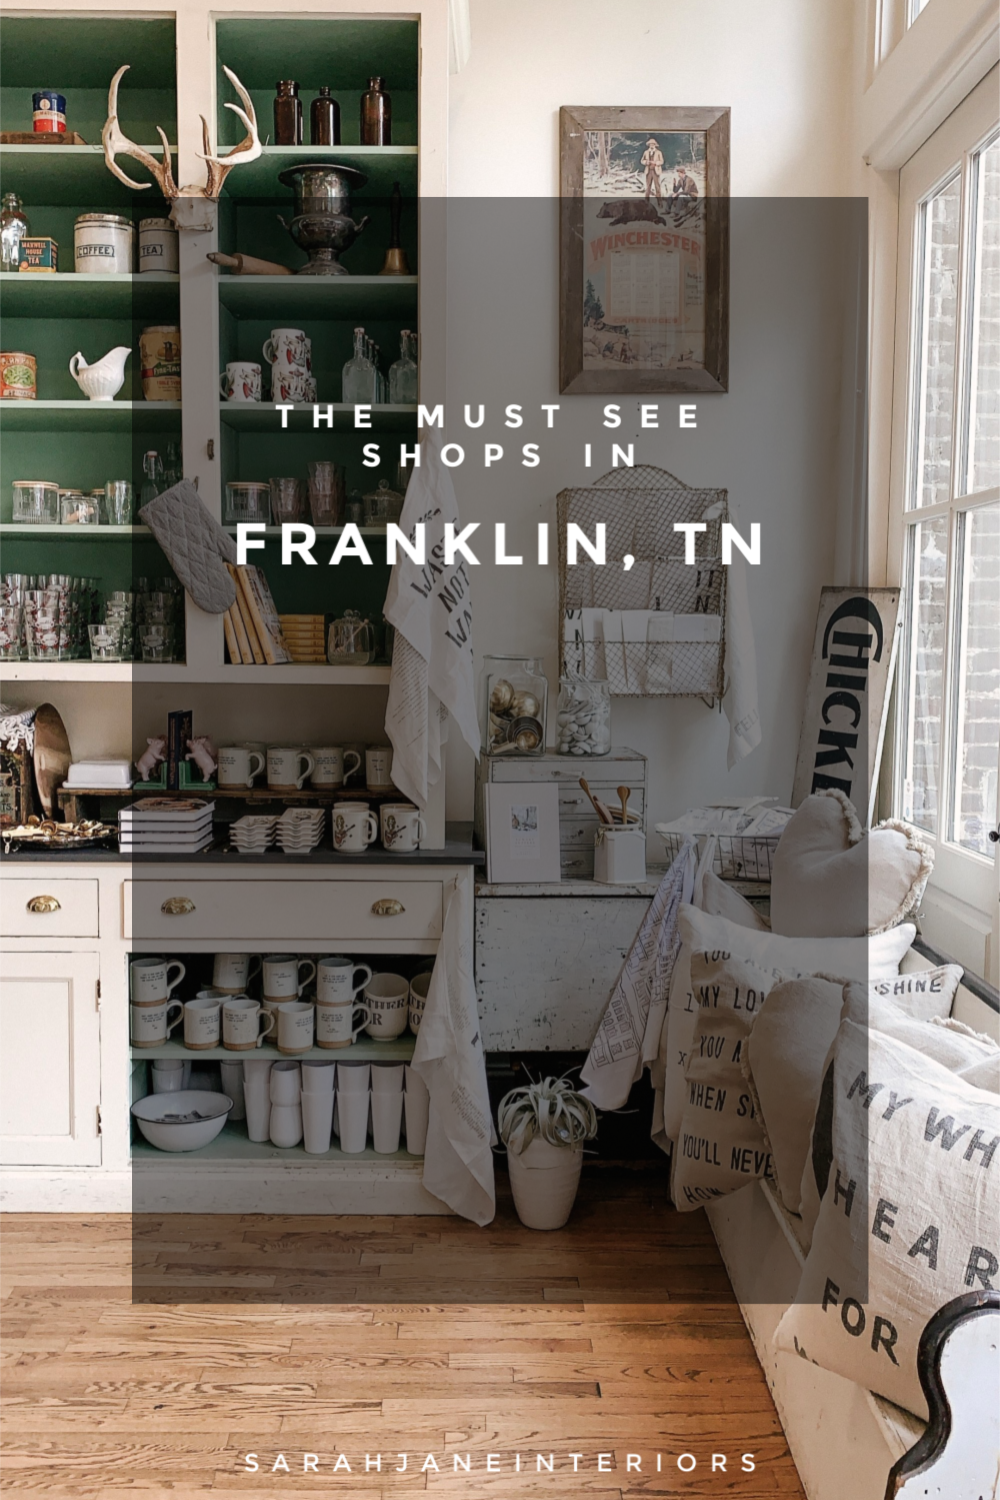 Franklin Tennessee The Must See Antique Shops Boutiques In 2020 Franklin Tennessee Tennessee Franklin